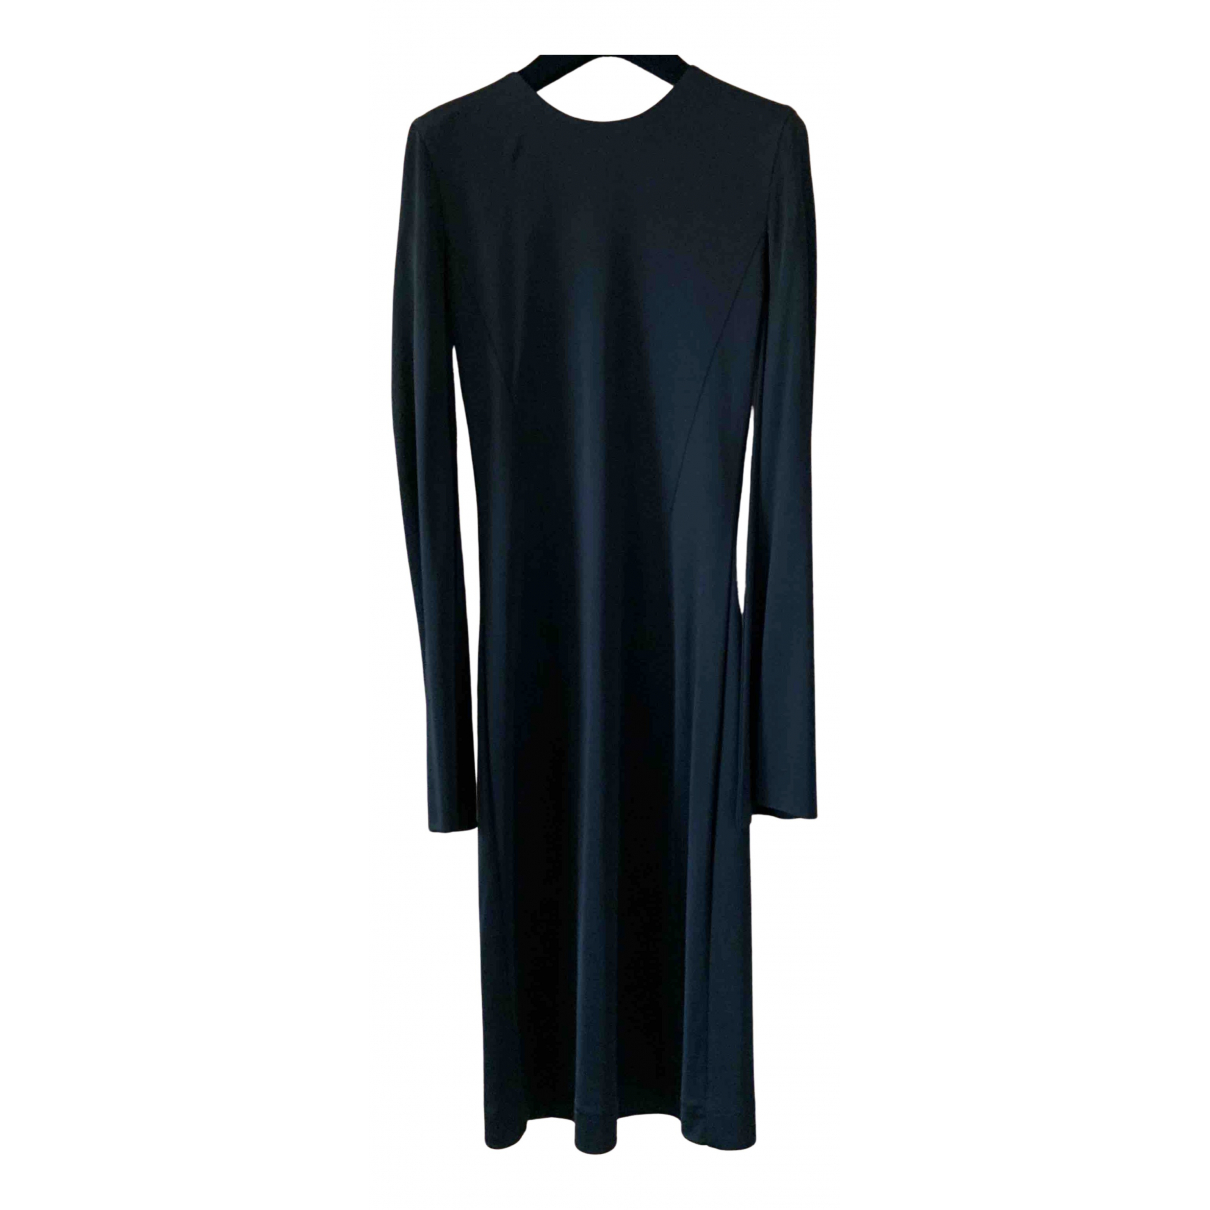 Givenchy N Black dress for Women 38 FR